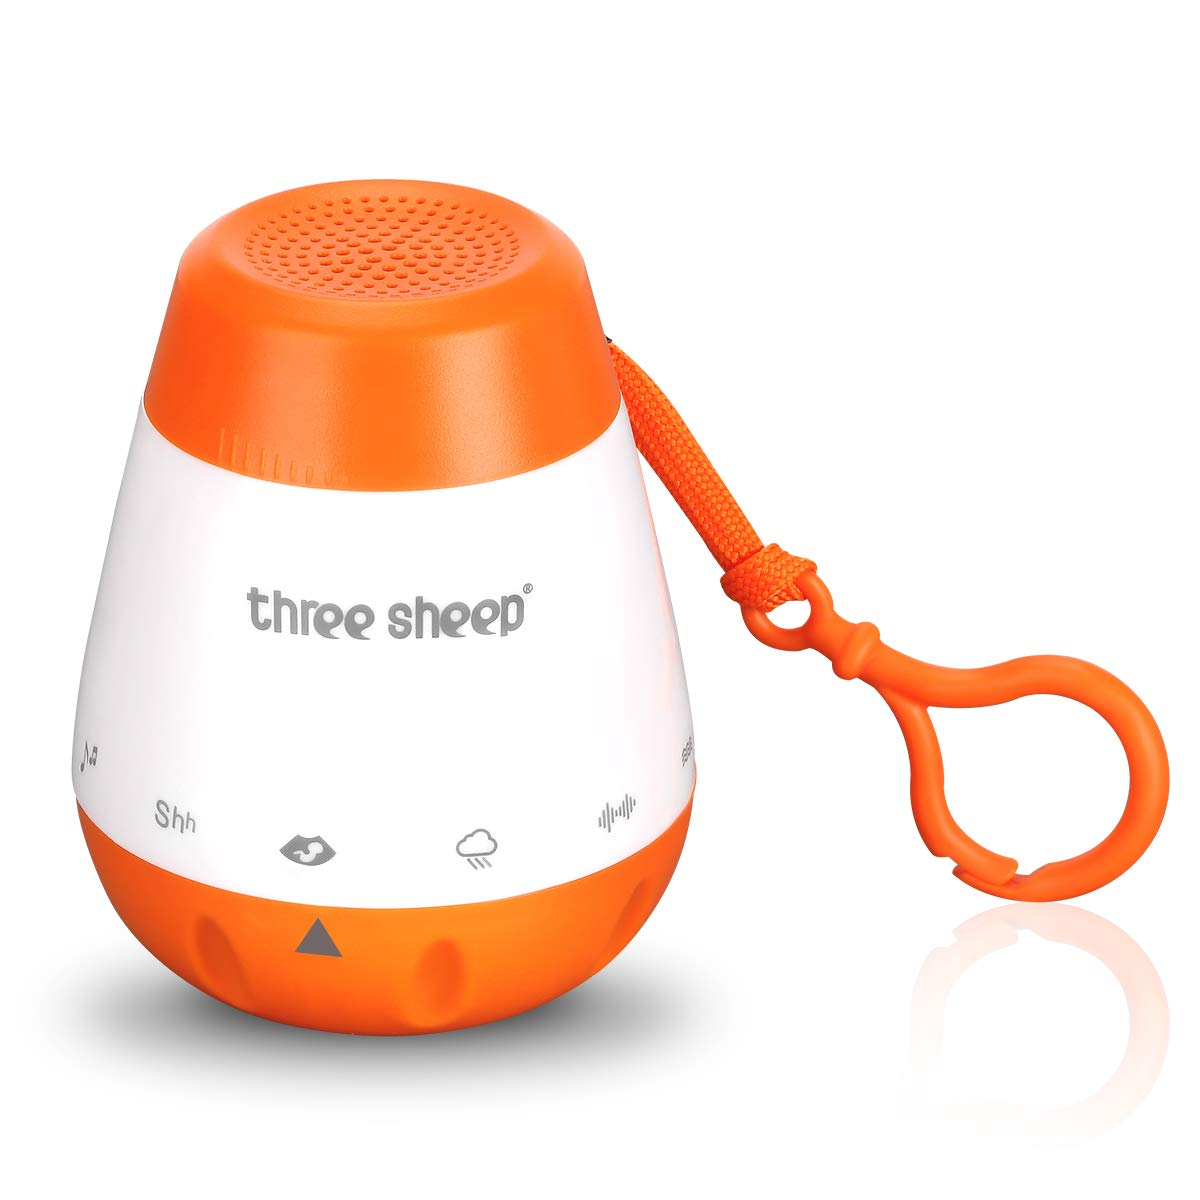 Baby Soother Sound Machine, Portable White Noise Machine with 6 Relaxing and Soothing Sound, 30 Minutes Auto-Off and Sound Sensor Function, Easily Attach to Strollers, Cribs & Car Seats, Rechargeable Threesheep